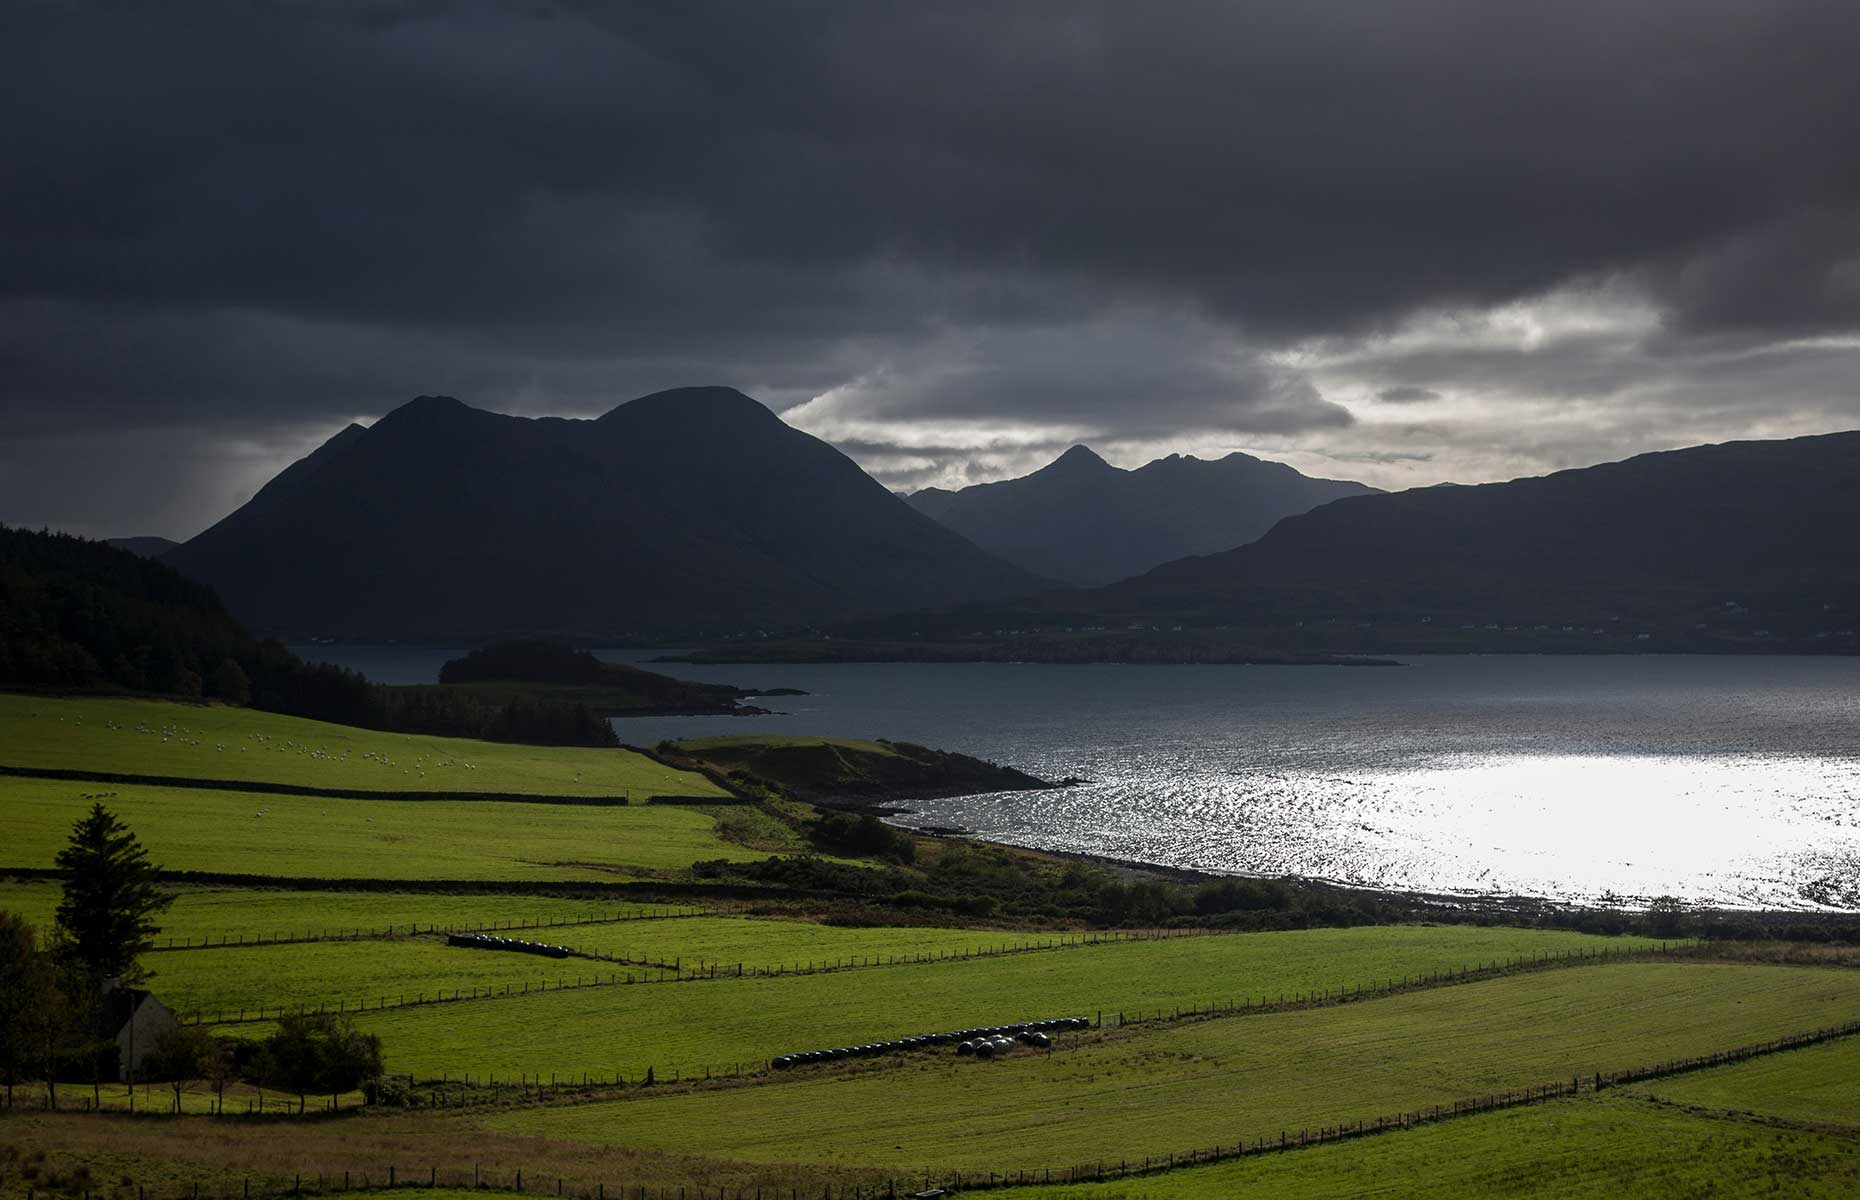 Cuillin Range from the Isle of Raasay (Image: Robertsonpr/Shutterstock)